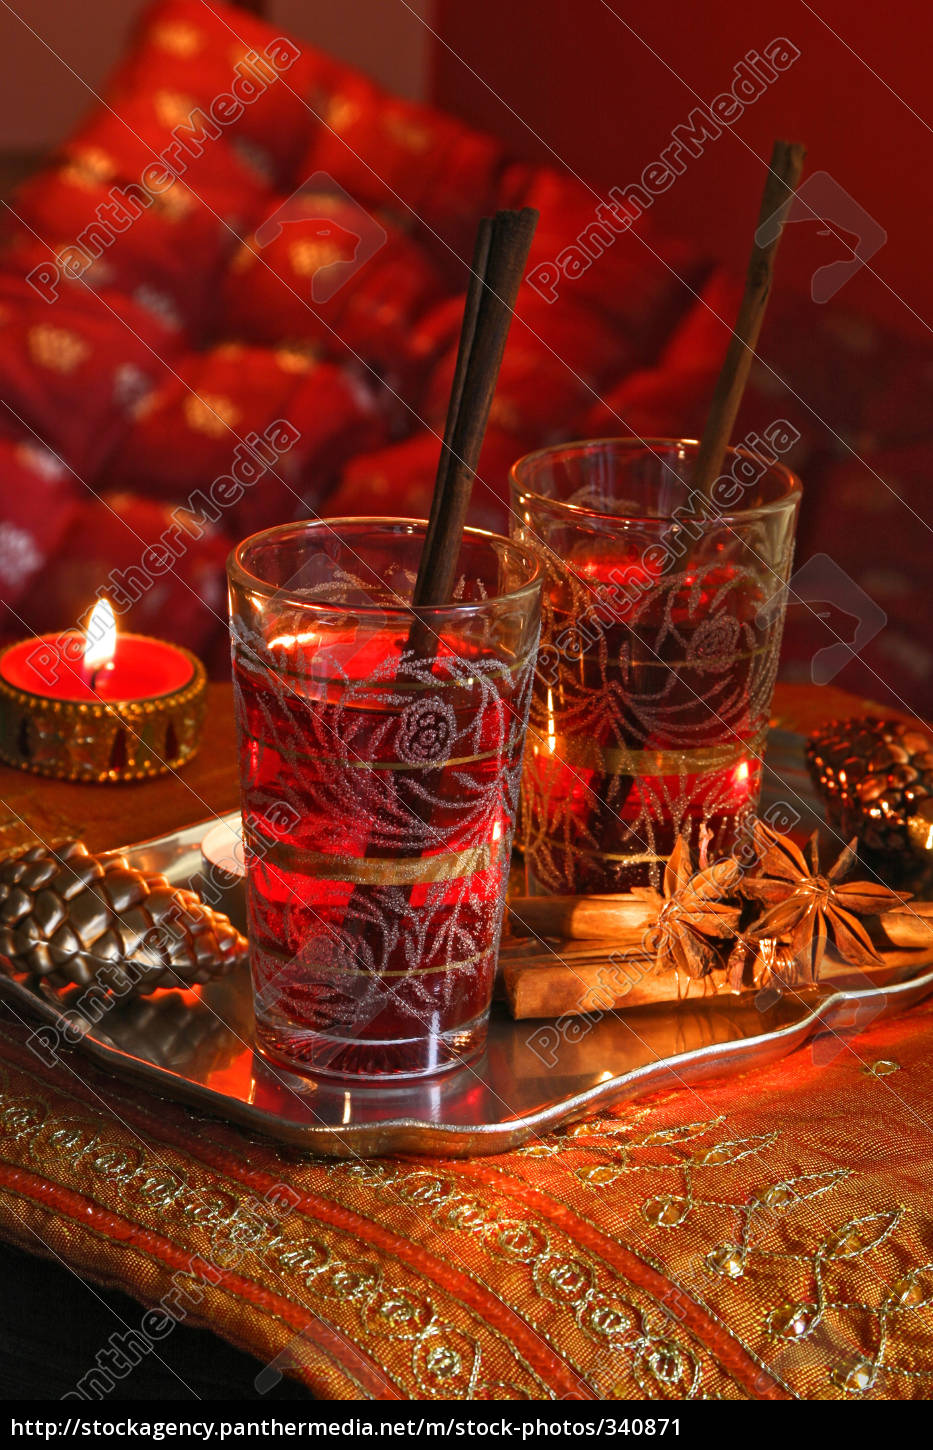 mulled, wine - 340871